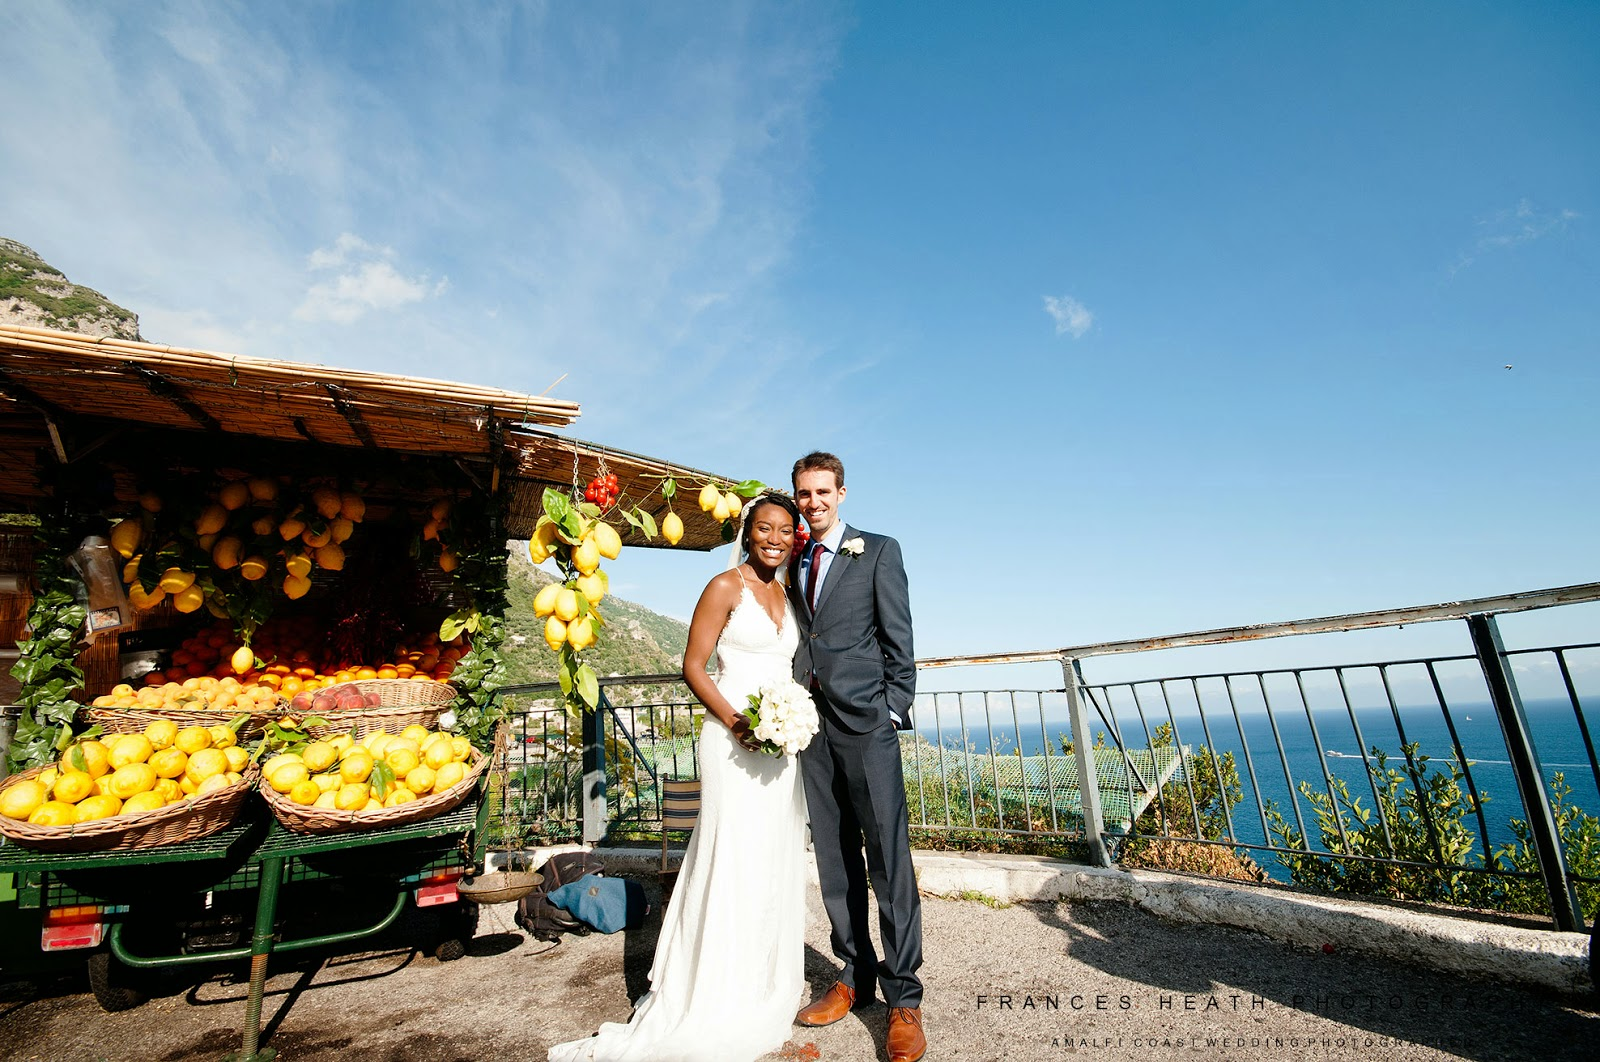 Bride and groom with Amalfi coast lemons